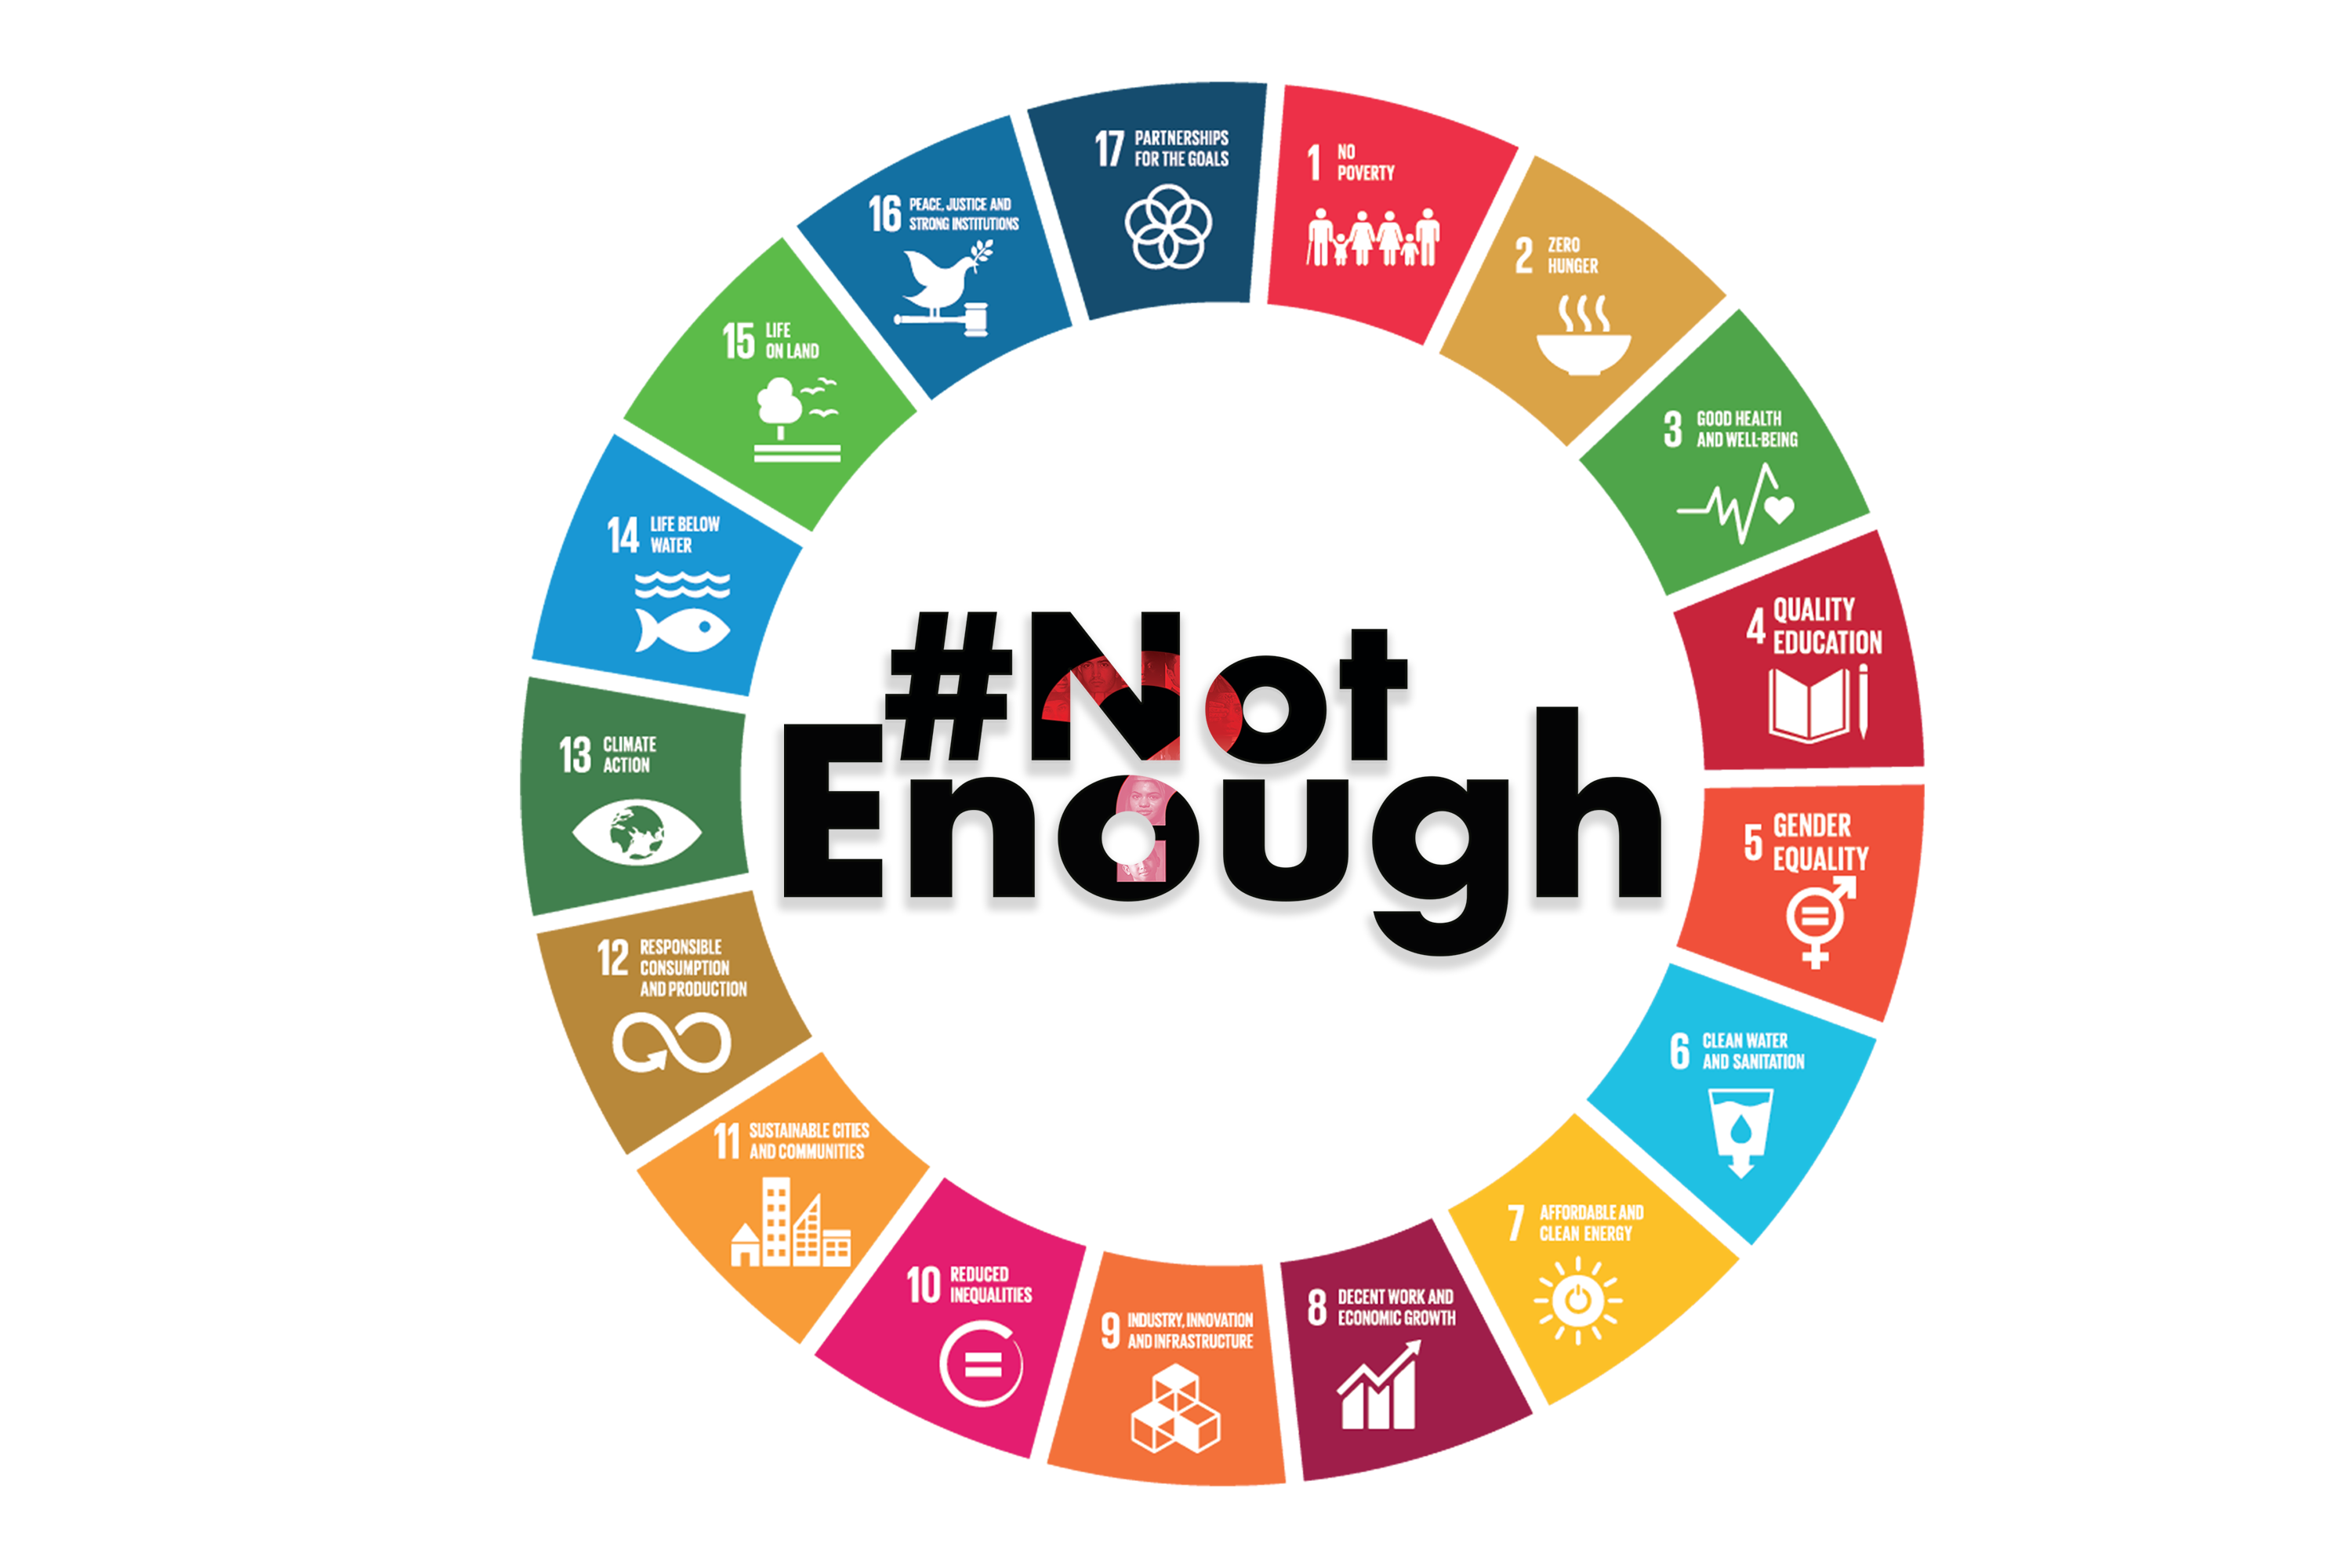 Not Enough with SDG's